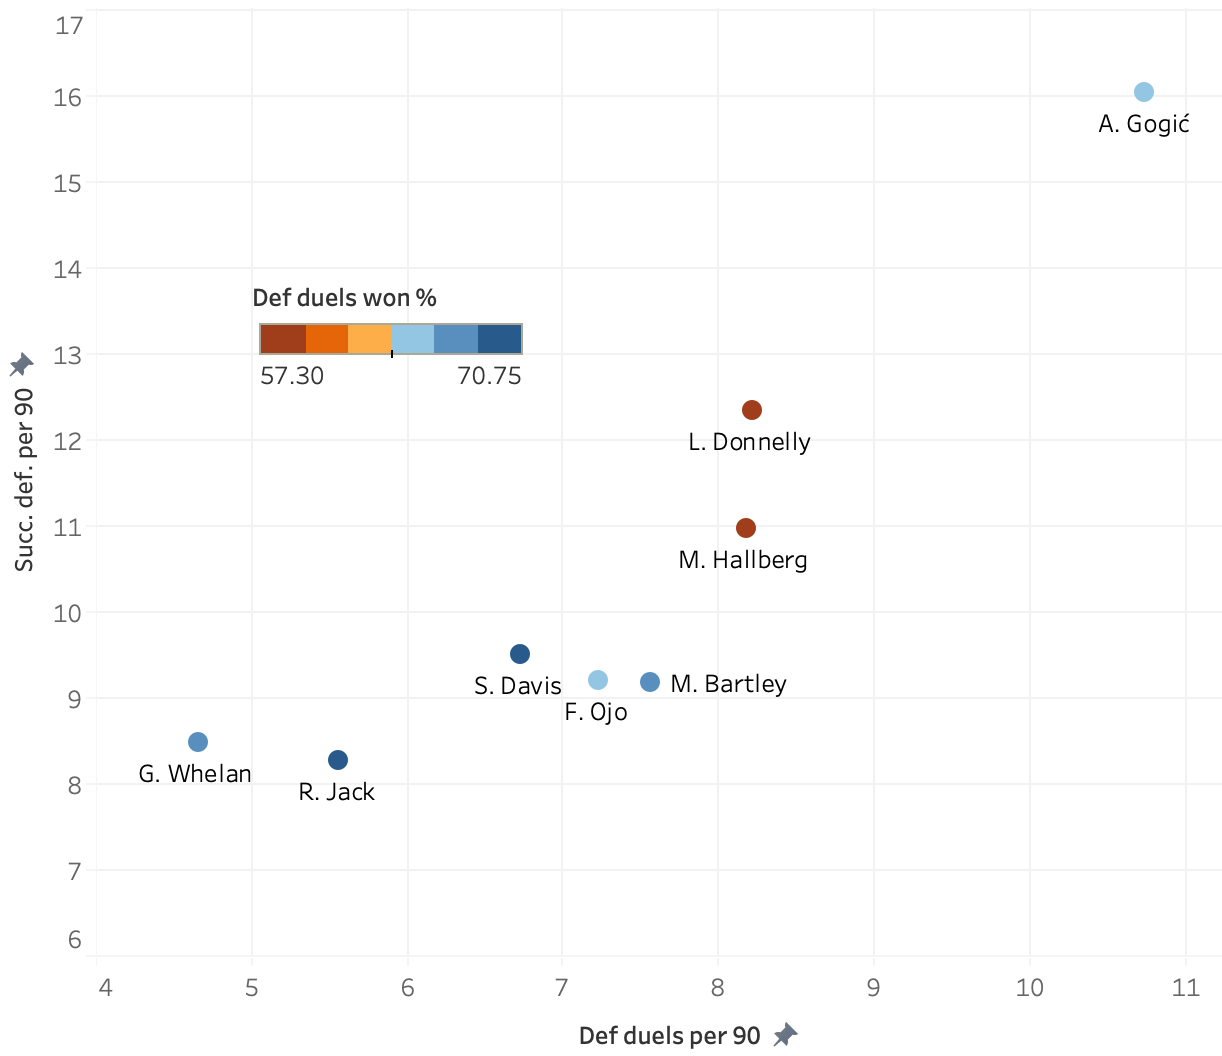 Finding the best defensive midfielder in the Scottish Premiership 19/20 – data analysis statistics